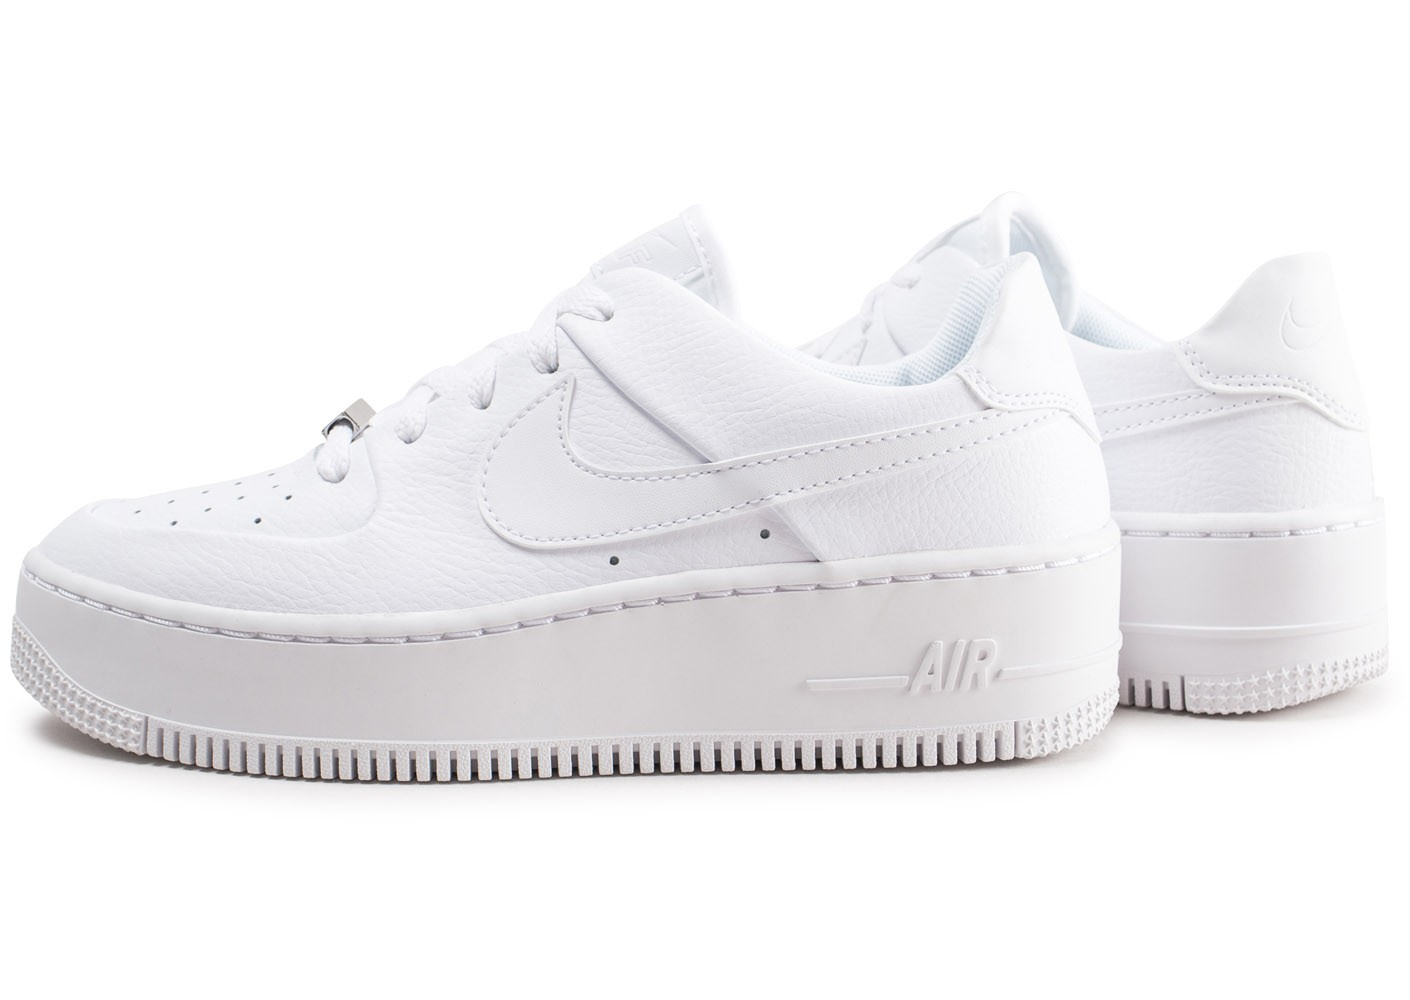 best price new authentic new products Nike Air Force 1 Sage Low triple blanc femme - Chaussures Baskets ...